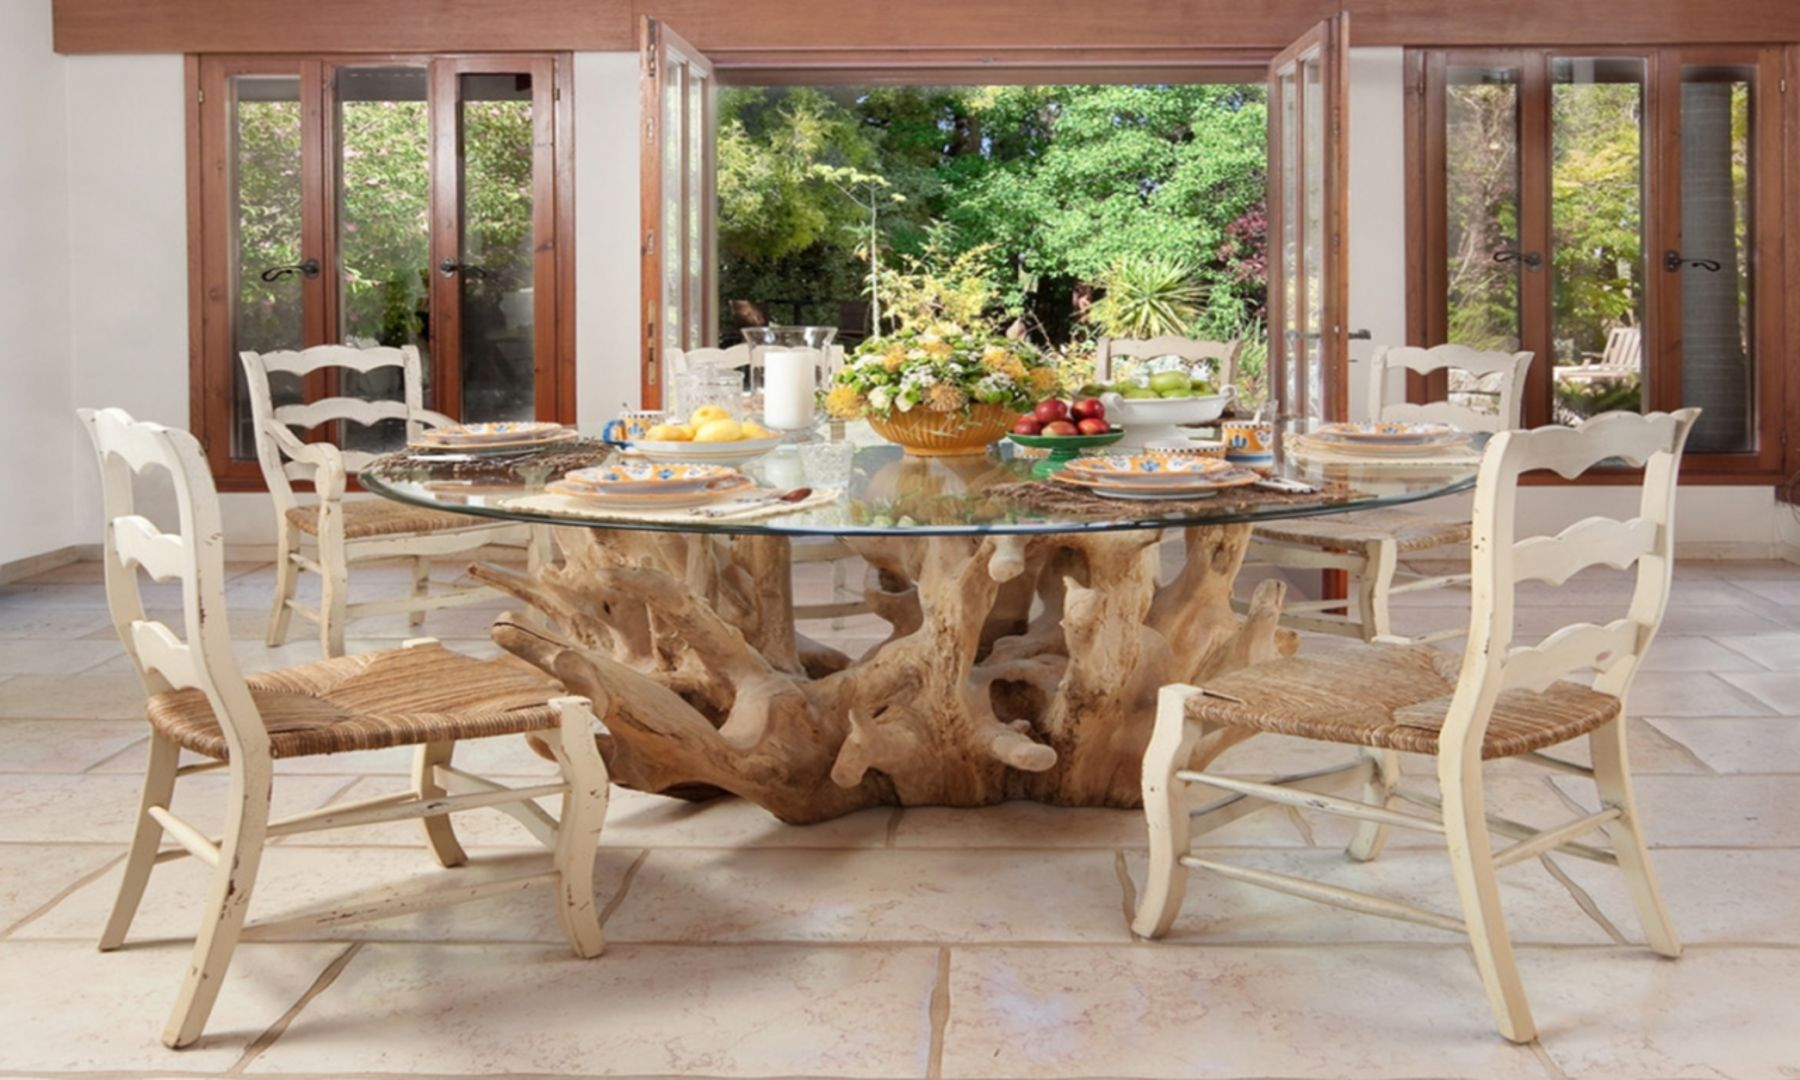 Top 12 Creative Dining Table Design Ideas To Make Your Dining Room